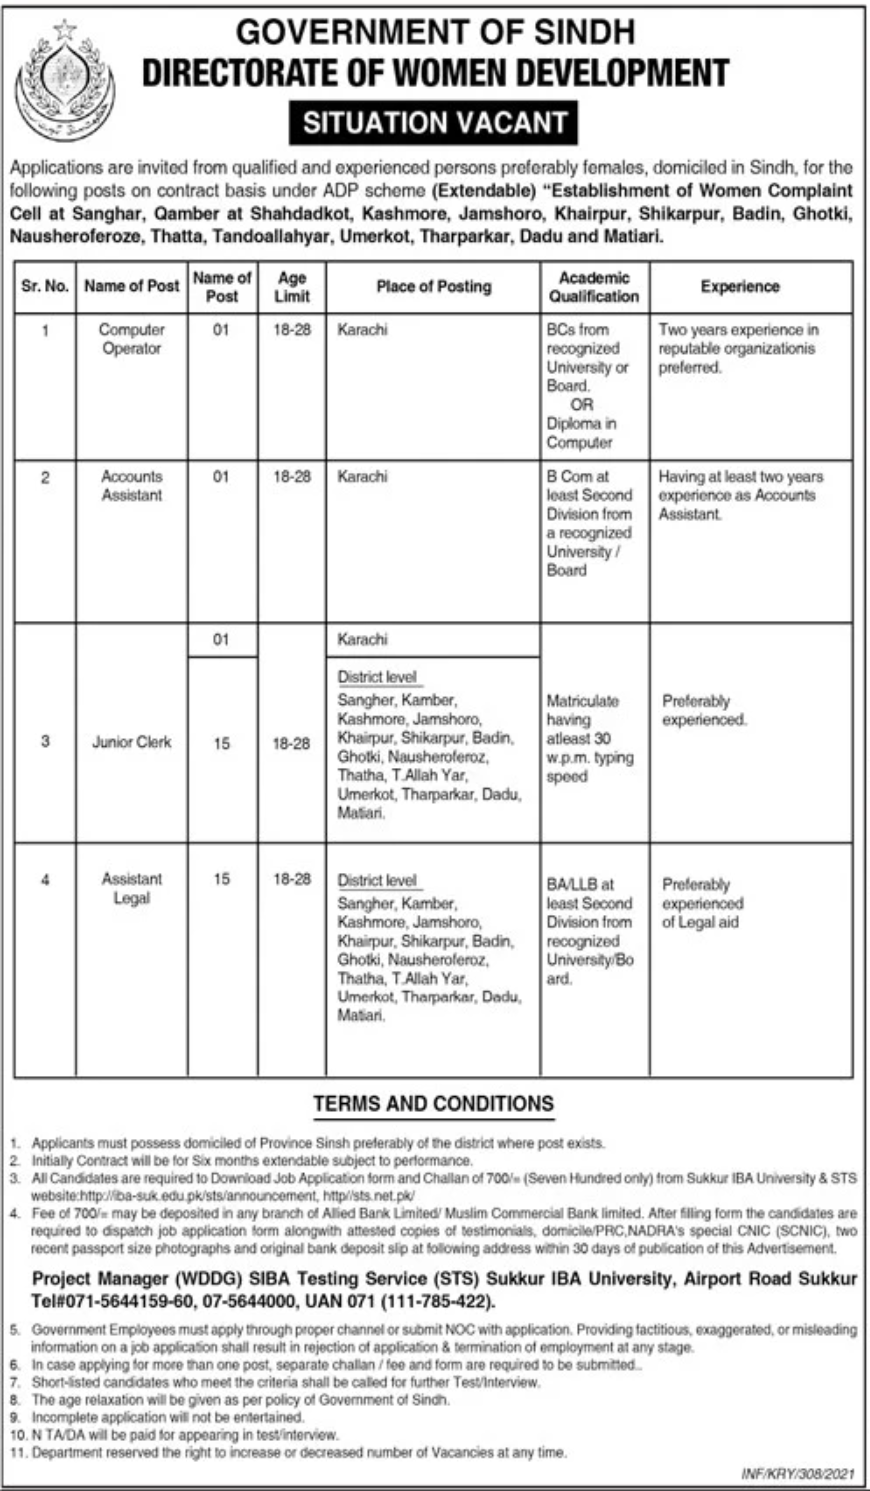 Government of Sindh Directorate of Women Development Jobs January 2021